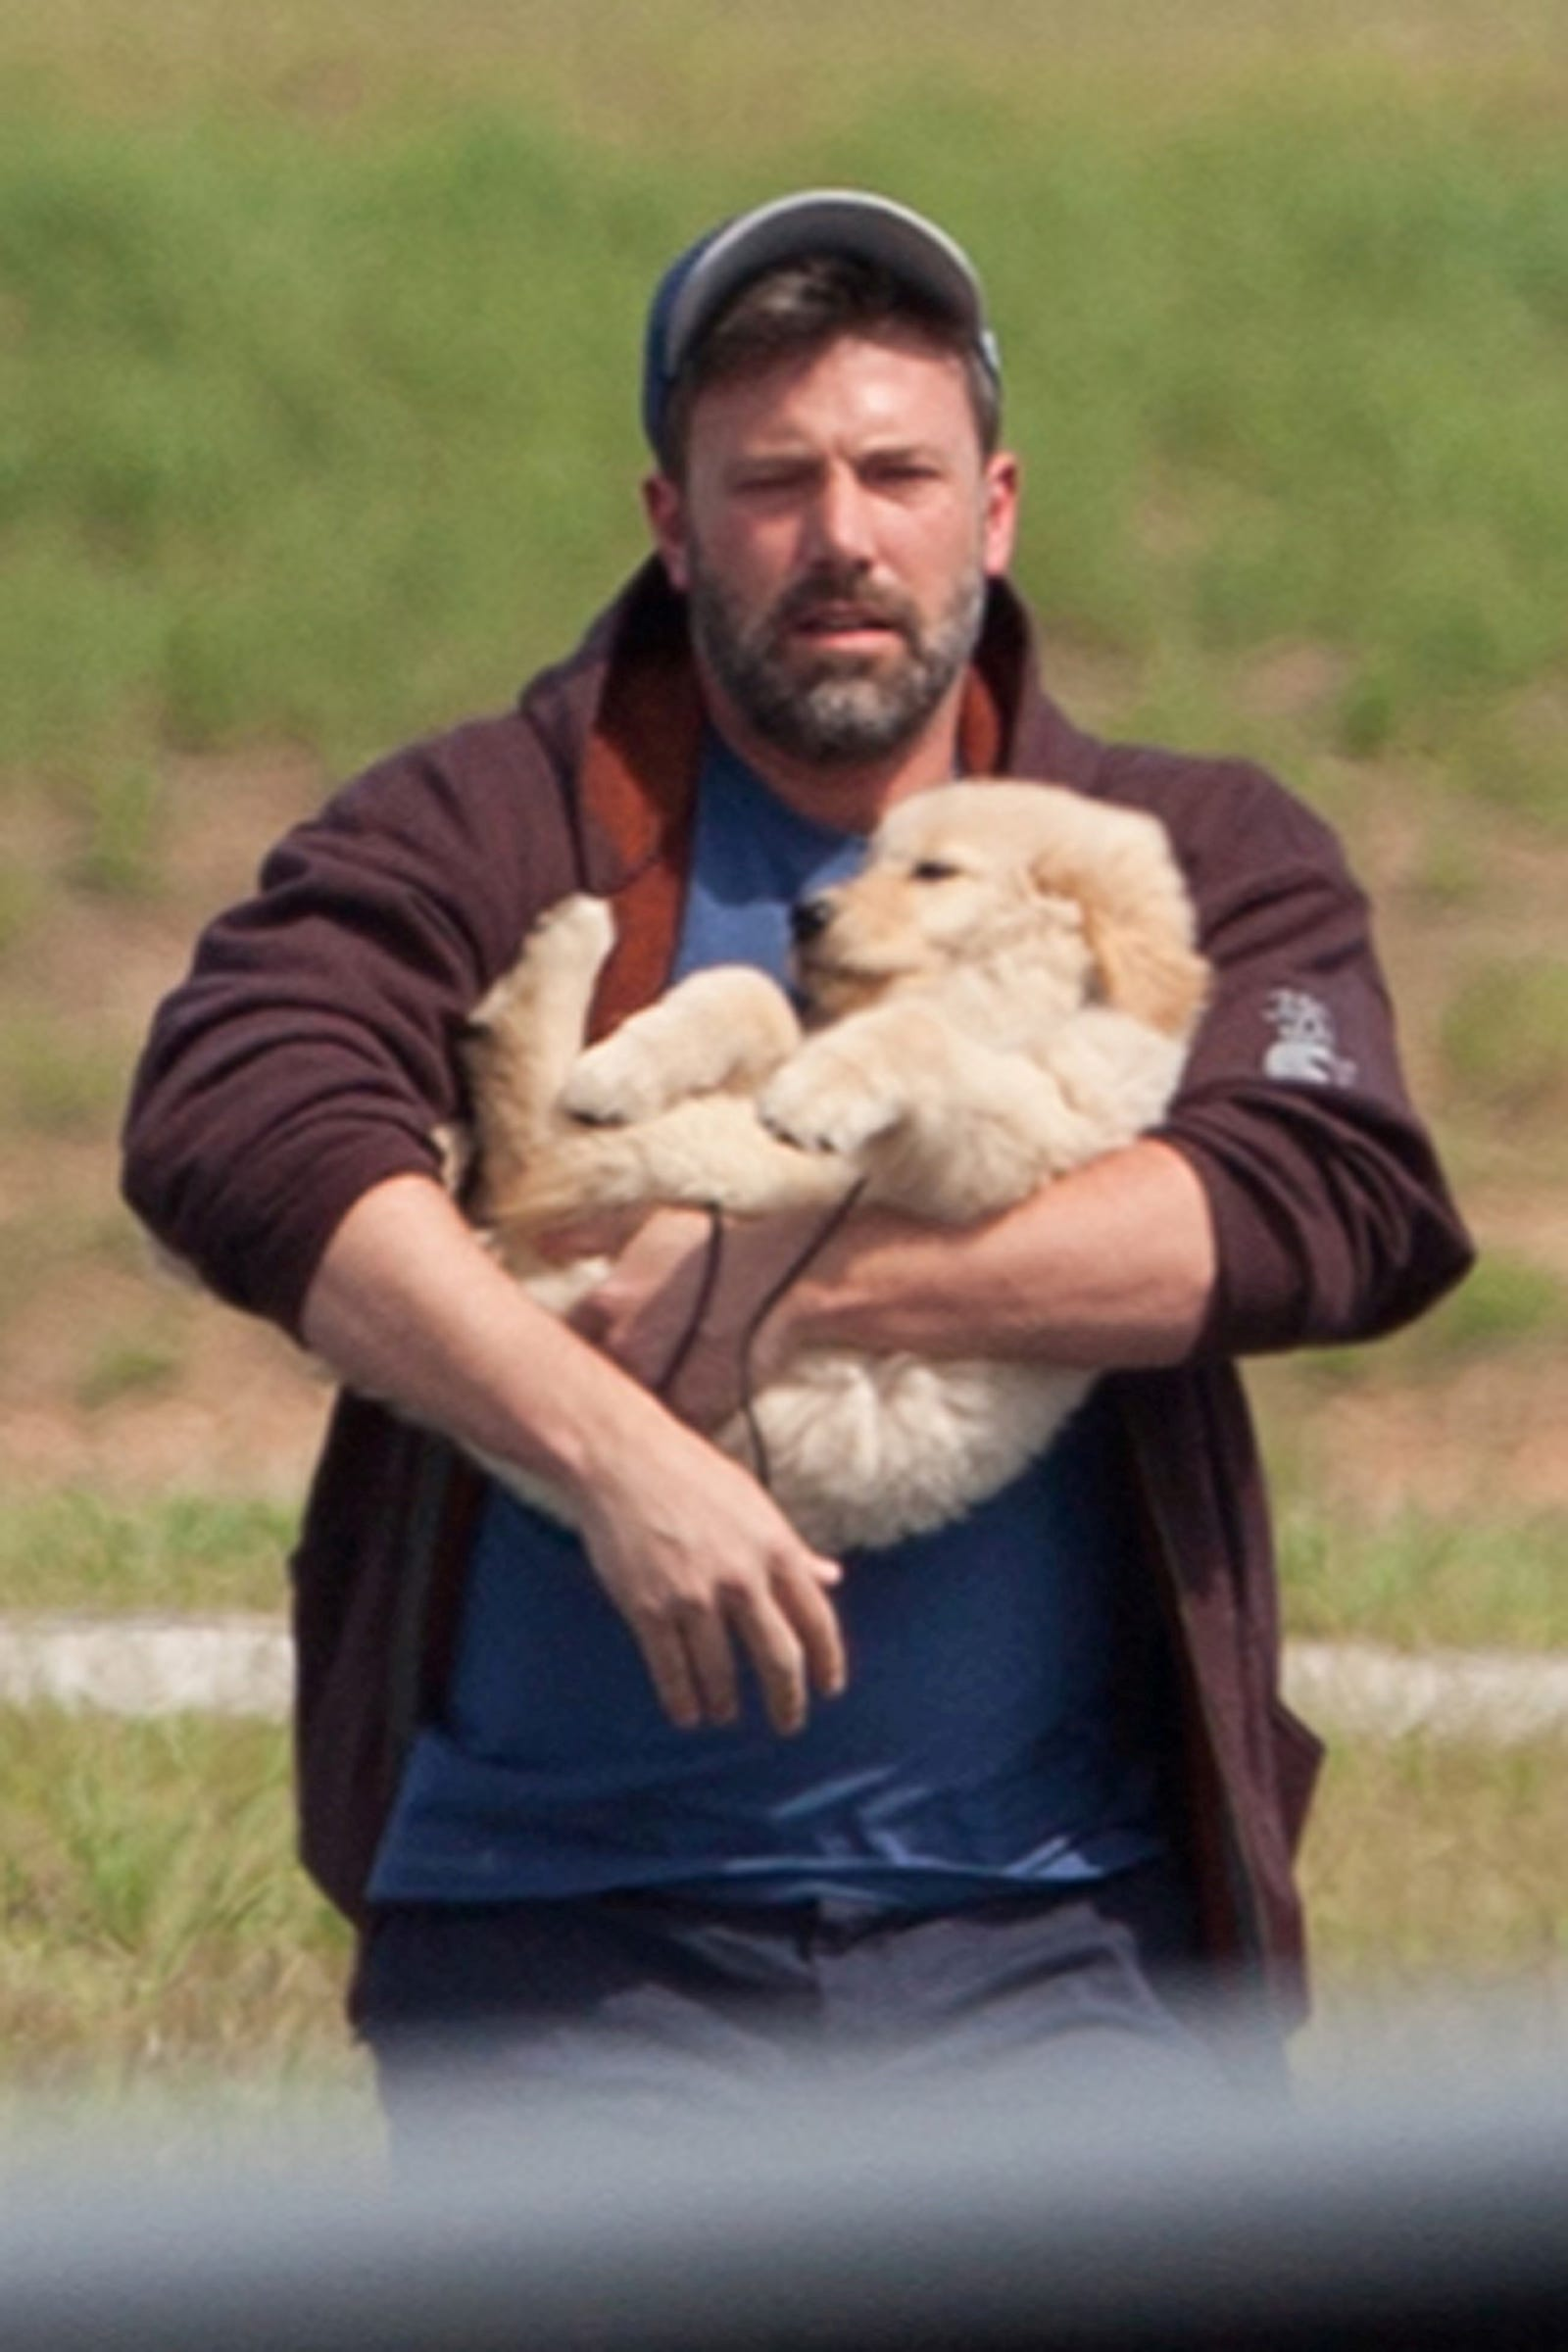 Ben Affleck is holding this dog like it's a pile of dirty laundry. Image: Backgrid